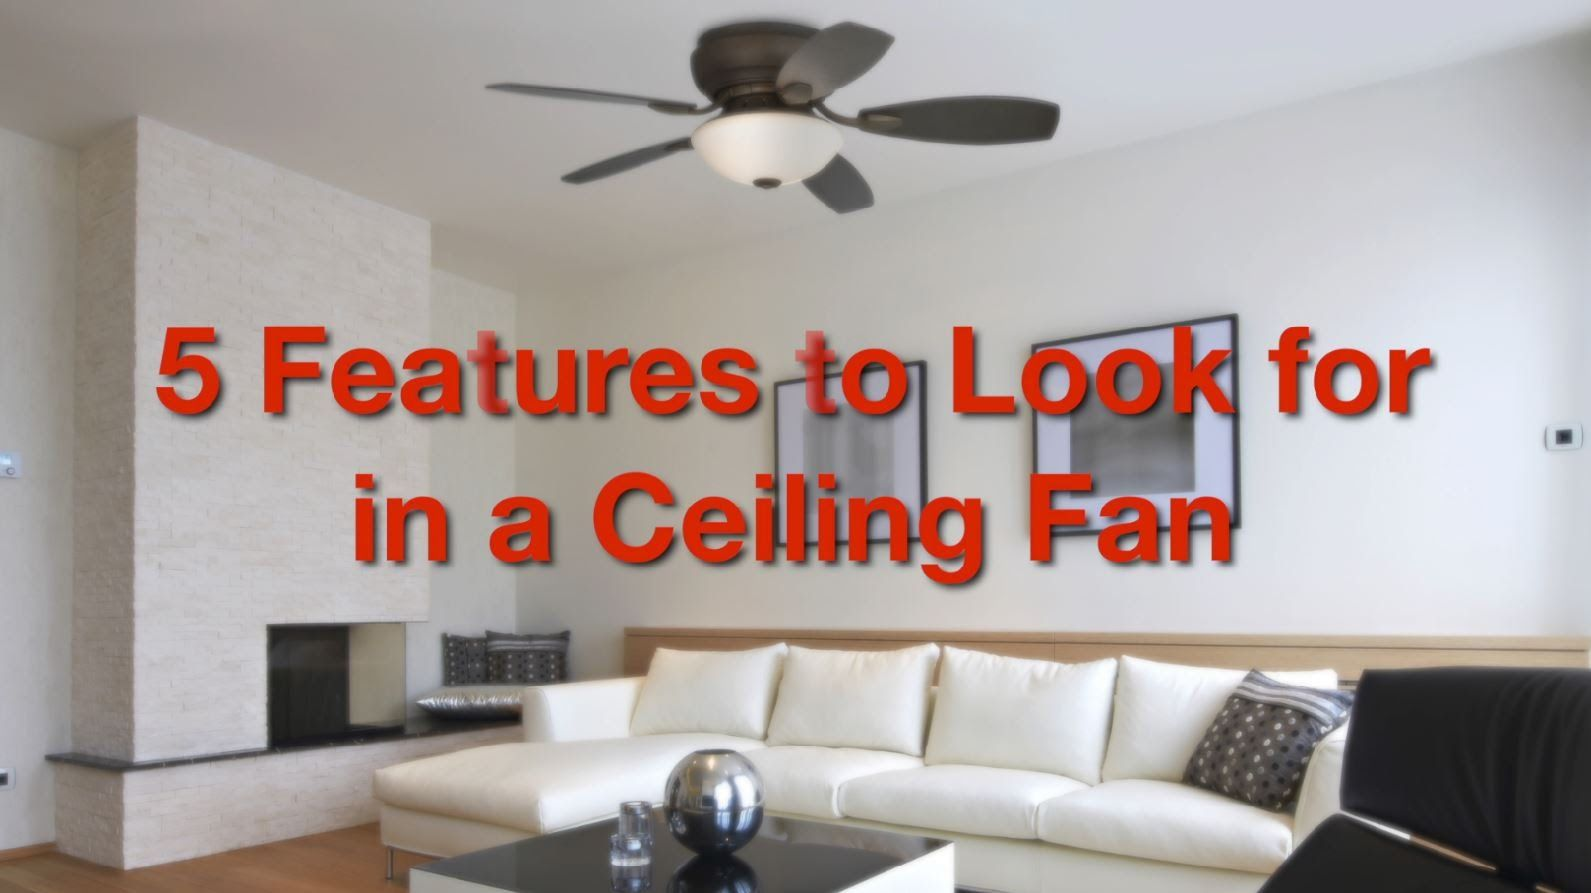 Ceiling fan buying guide how to choose a ceiling fan a vidieos ceiling fan buying guide how to choose a ceiling fan mozeypictures Image collections